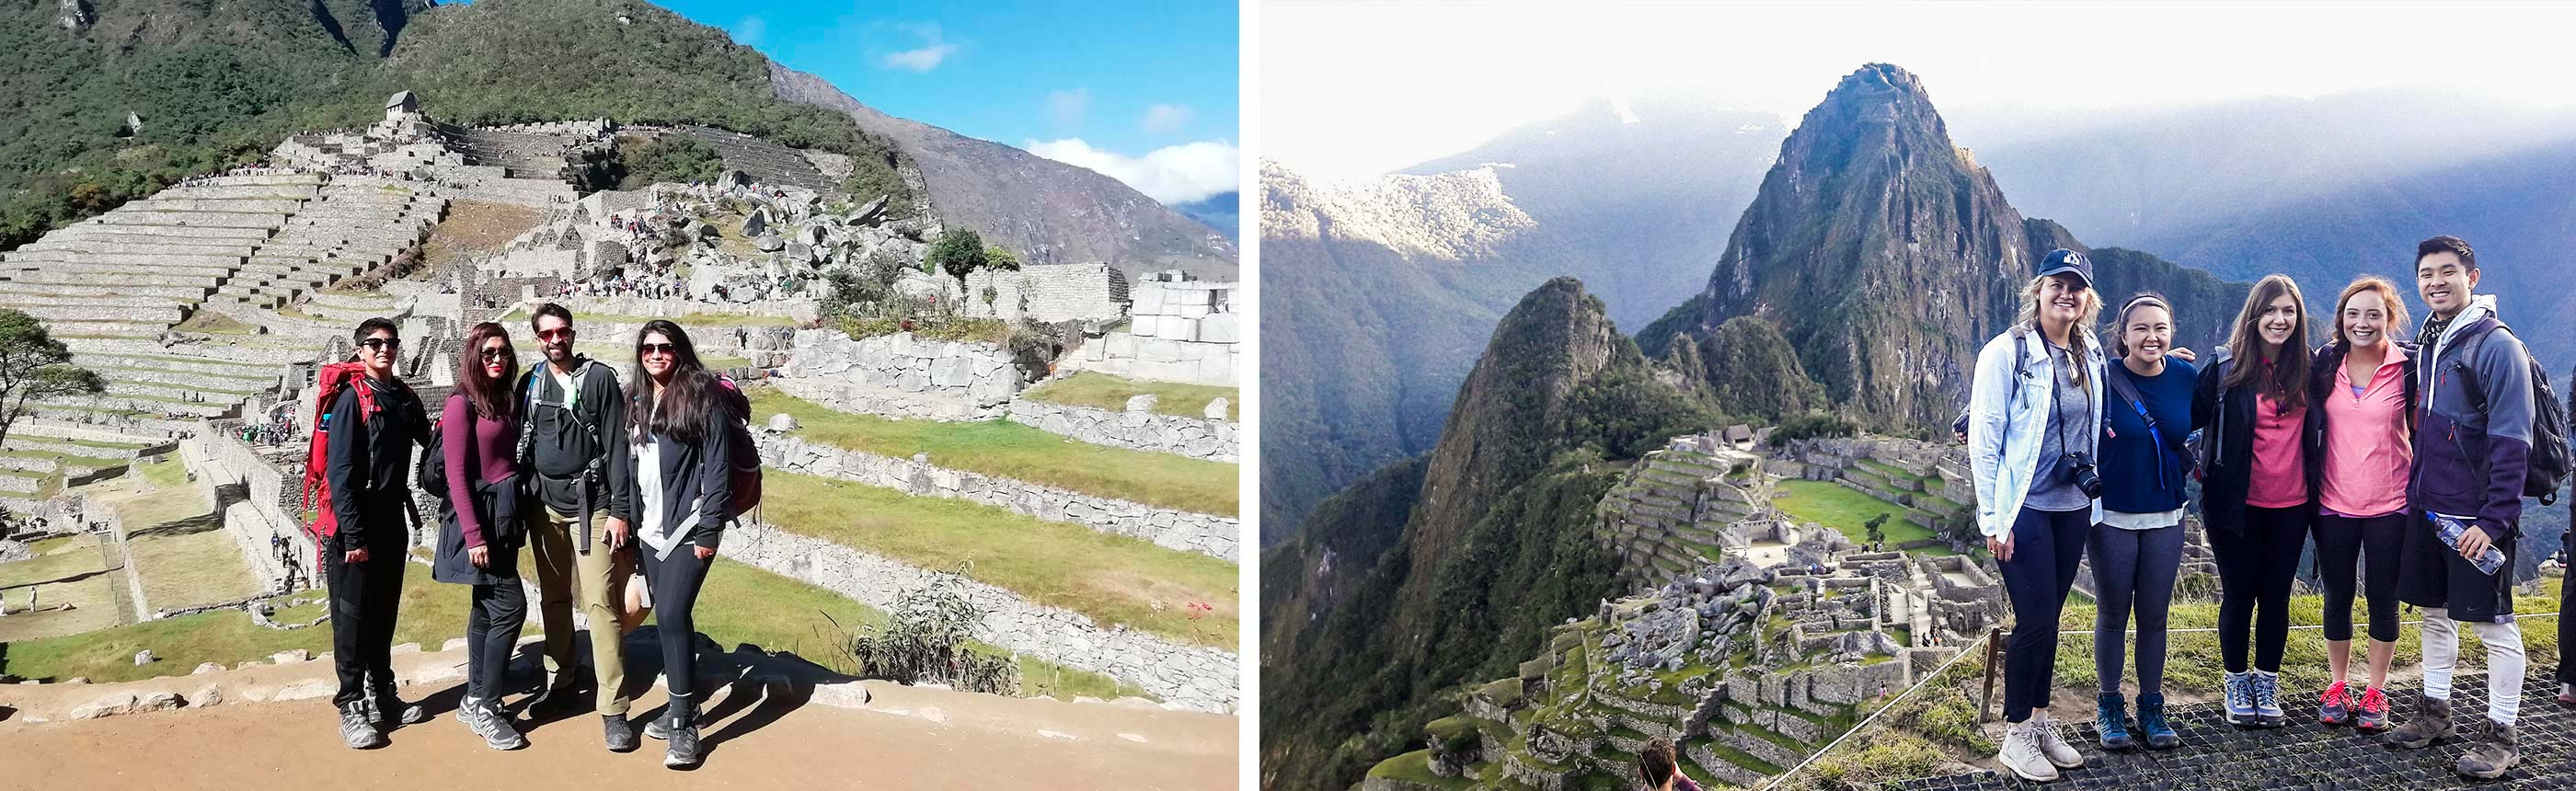 Sacred-Valley-and-Machu-Picchu-3-Day-Tour